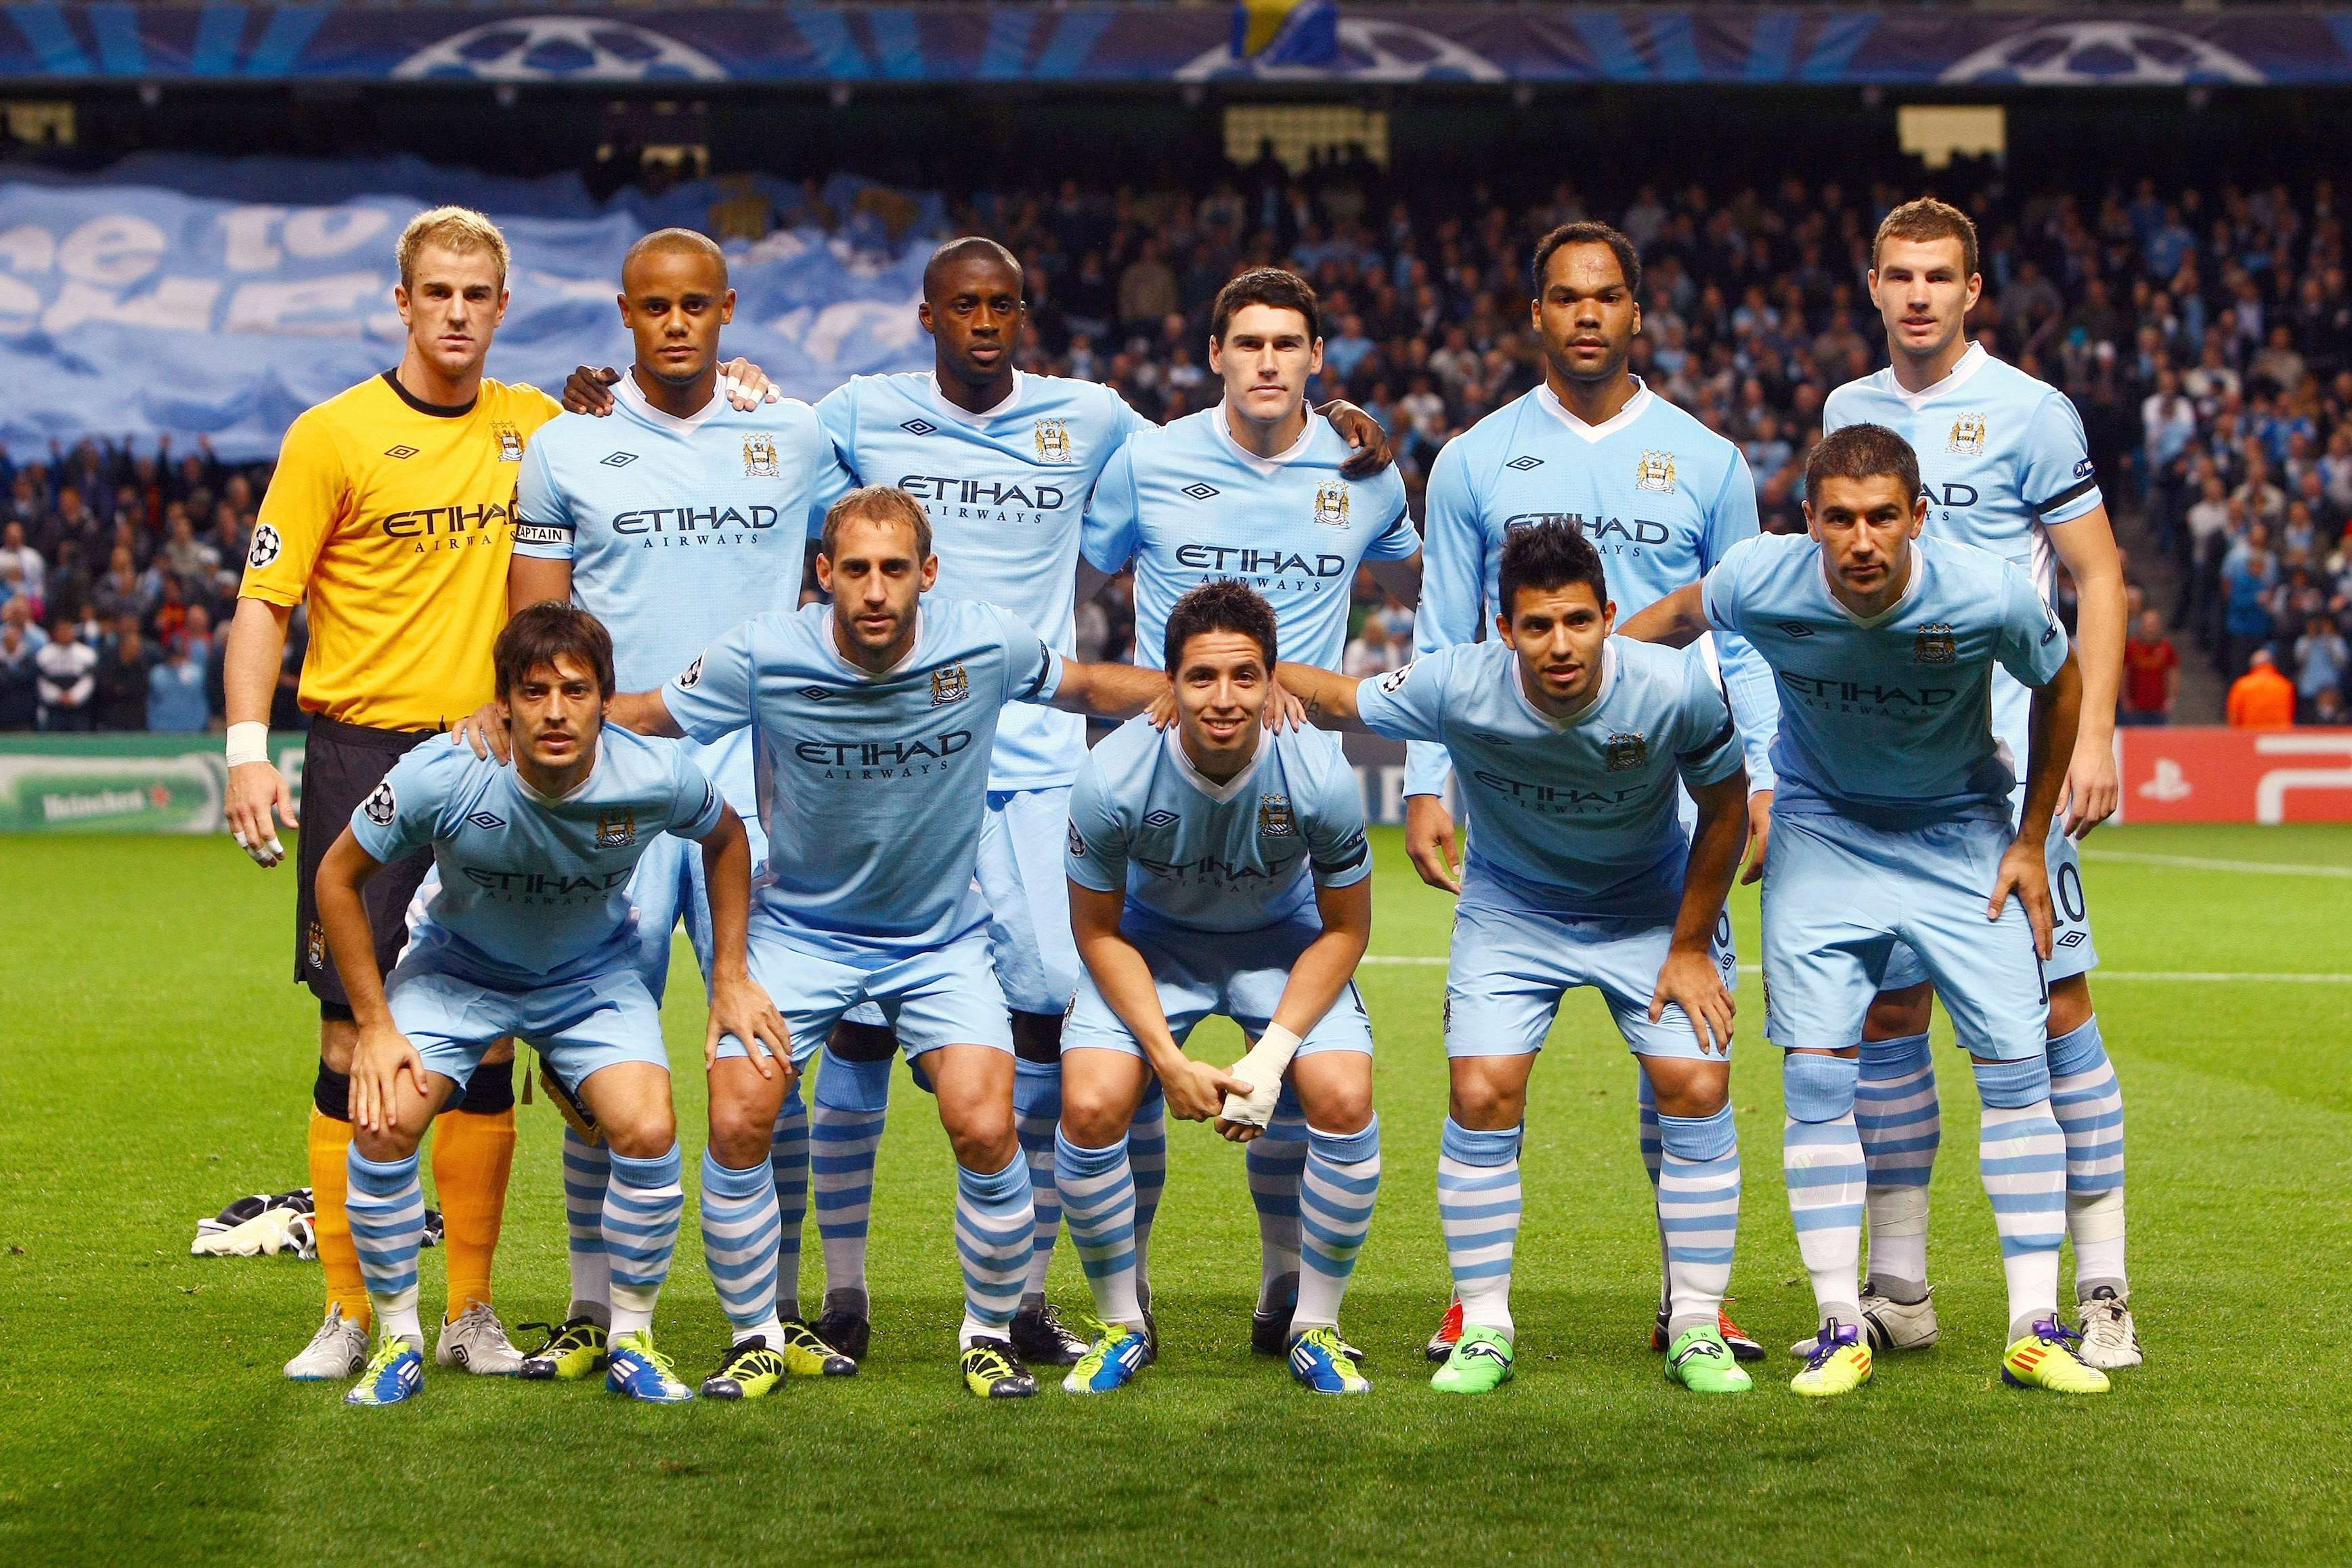 Equipe Manchester City